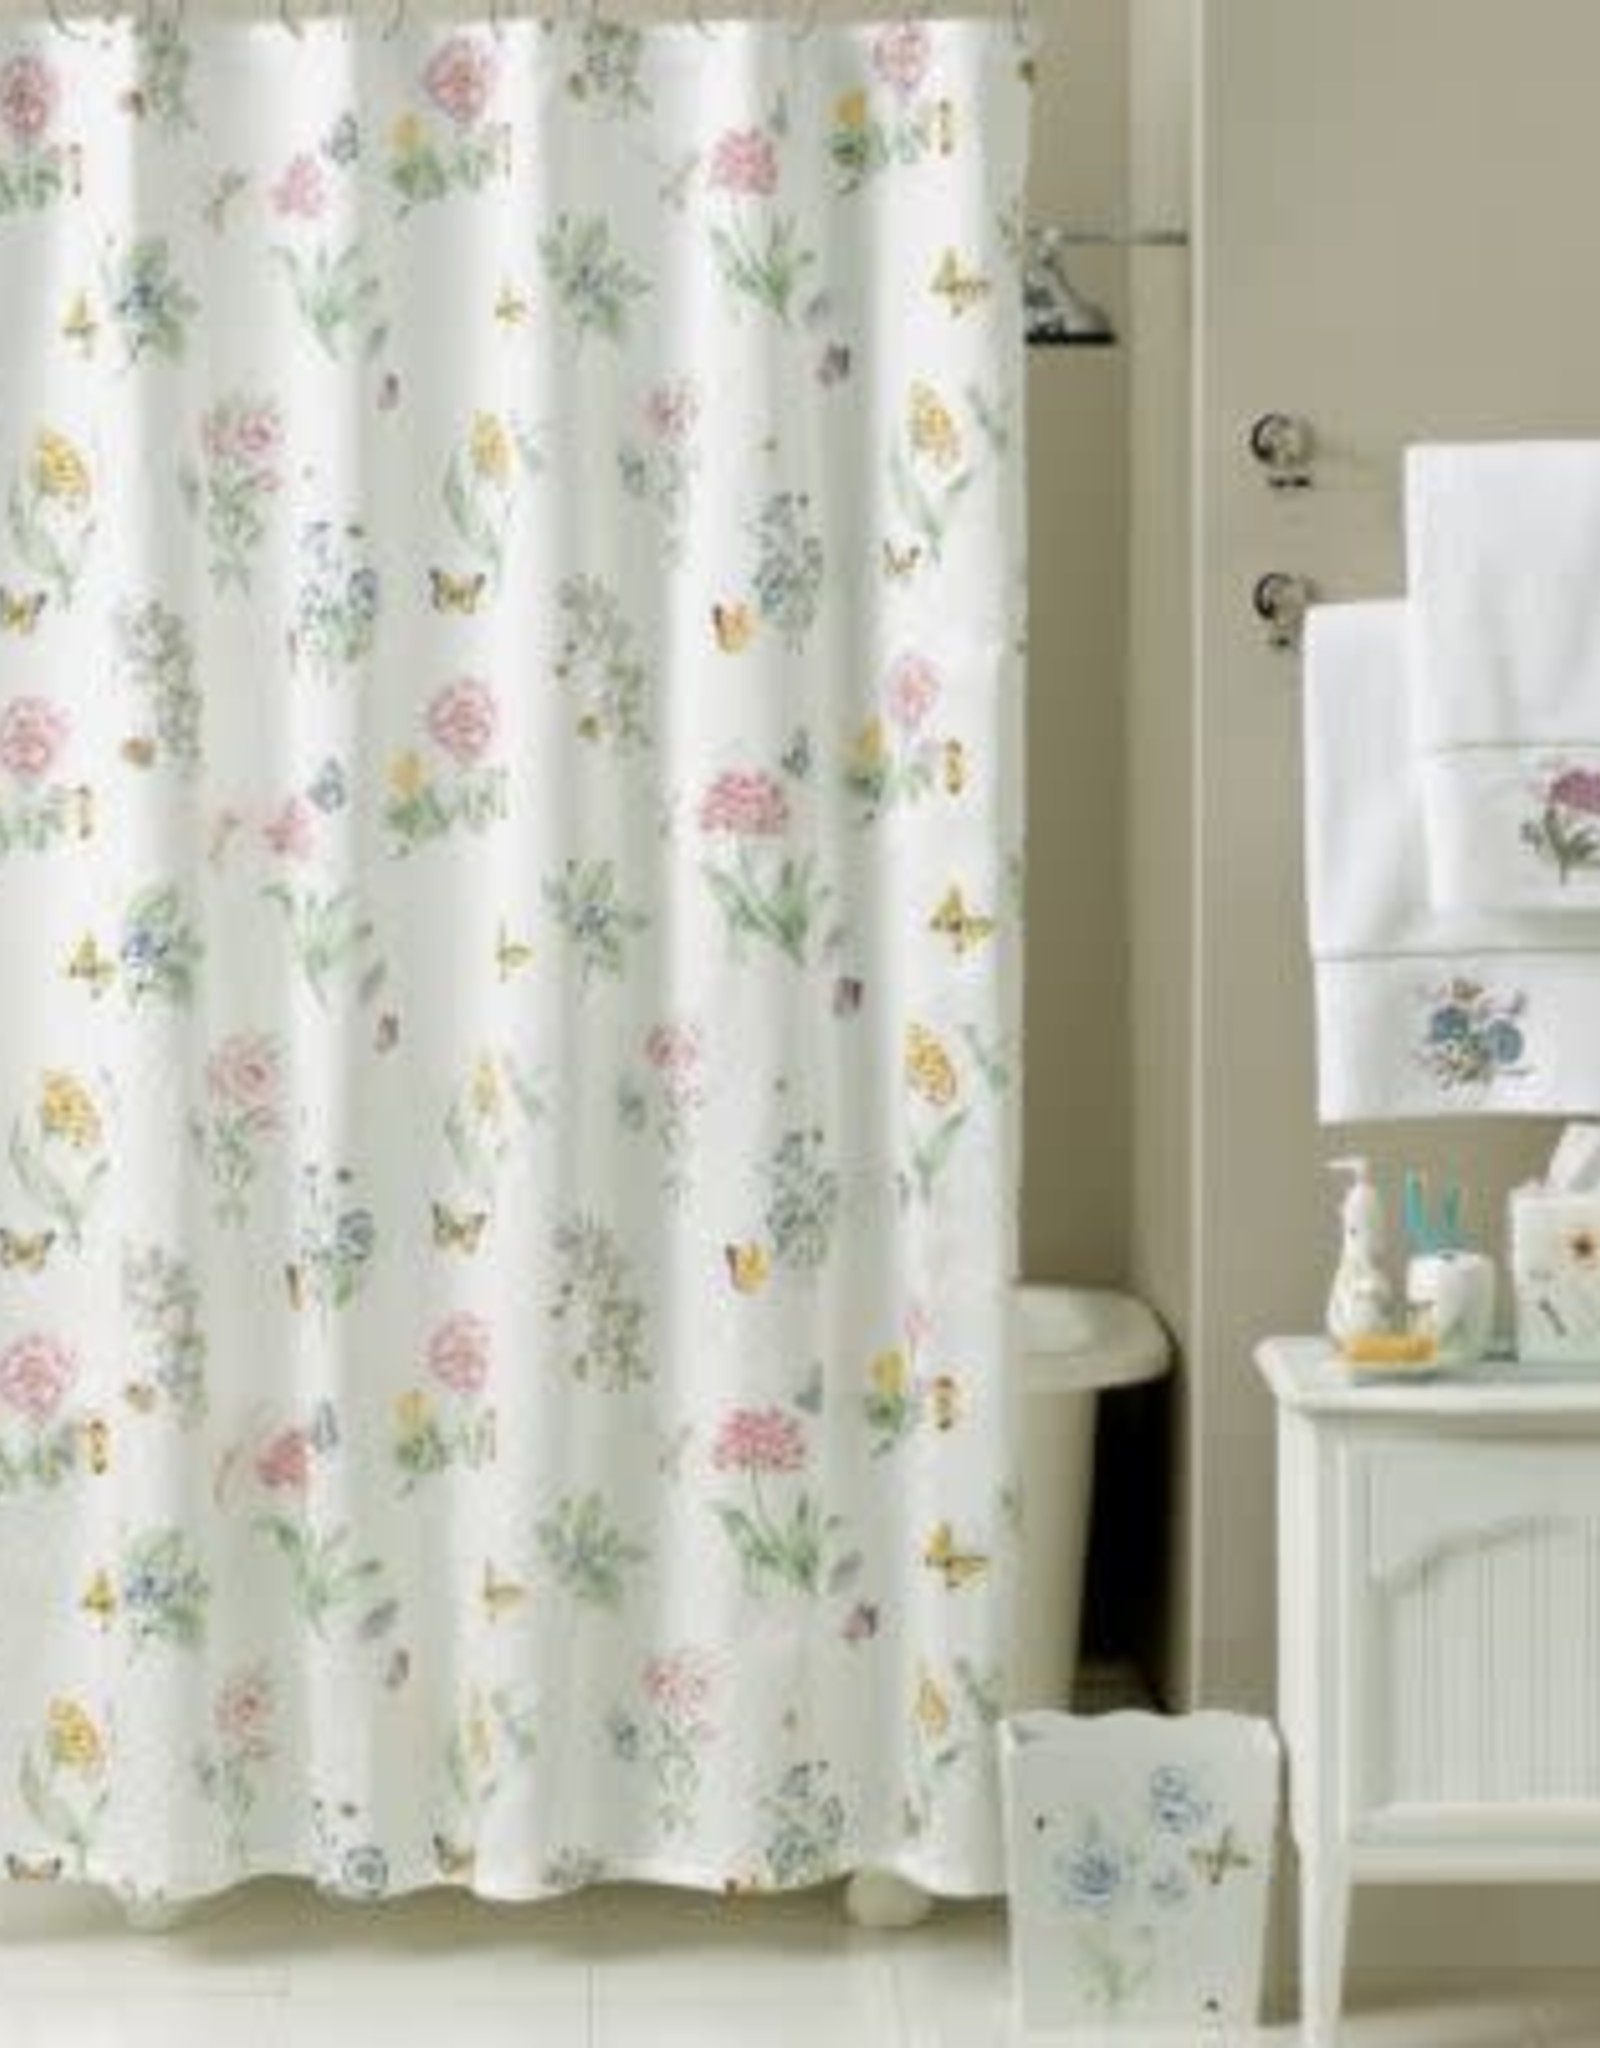 Lenox Lenox Butterfly Meadow Shower Curtain 72X72